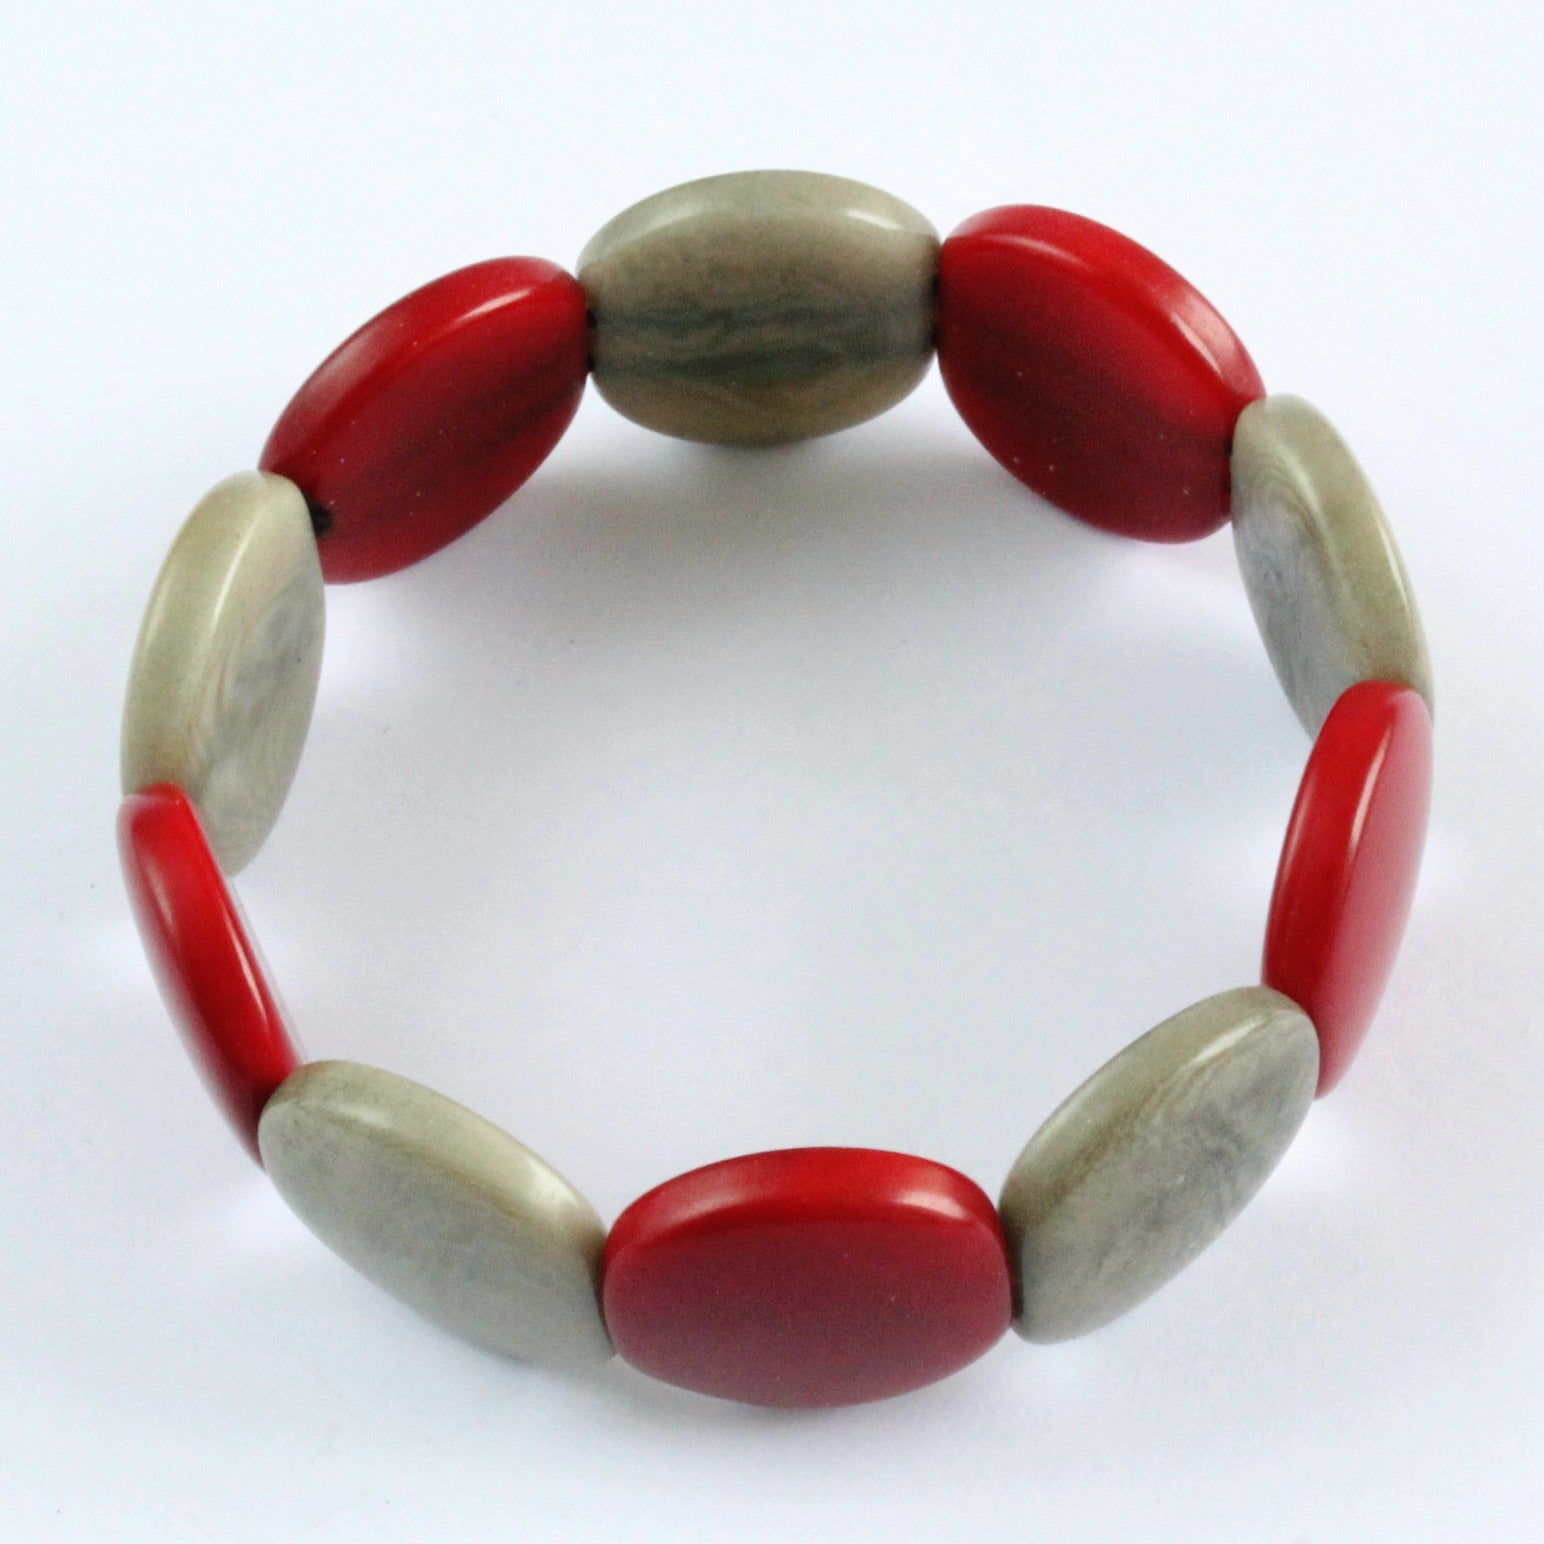 Handmade bracelet, tagua nut, sustainable,  colourful, red, grey